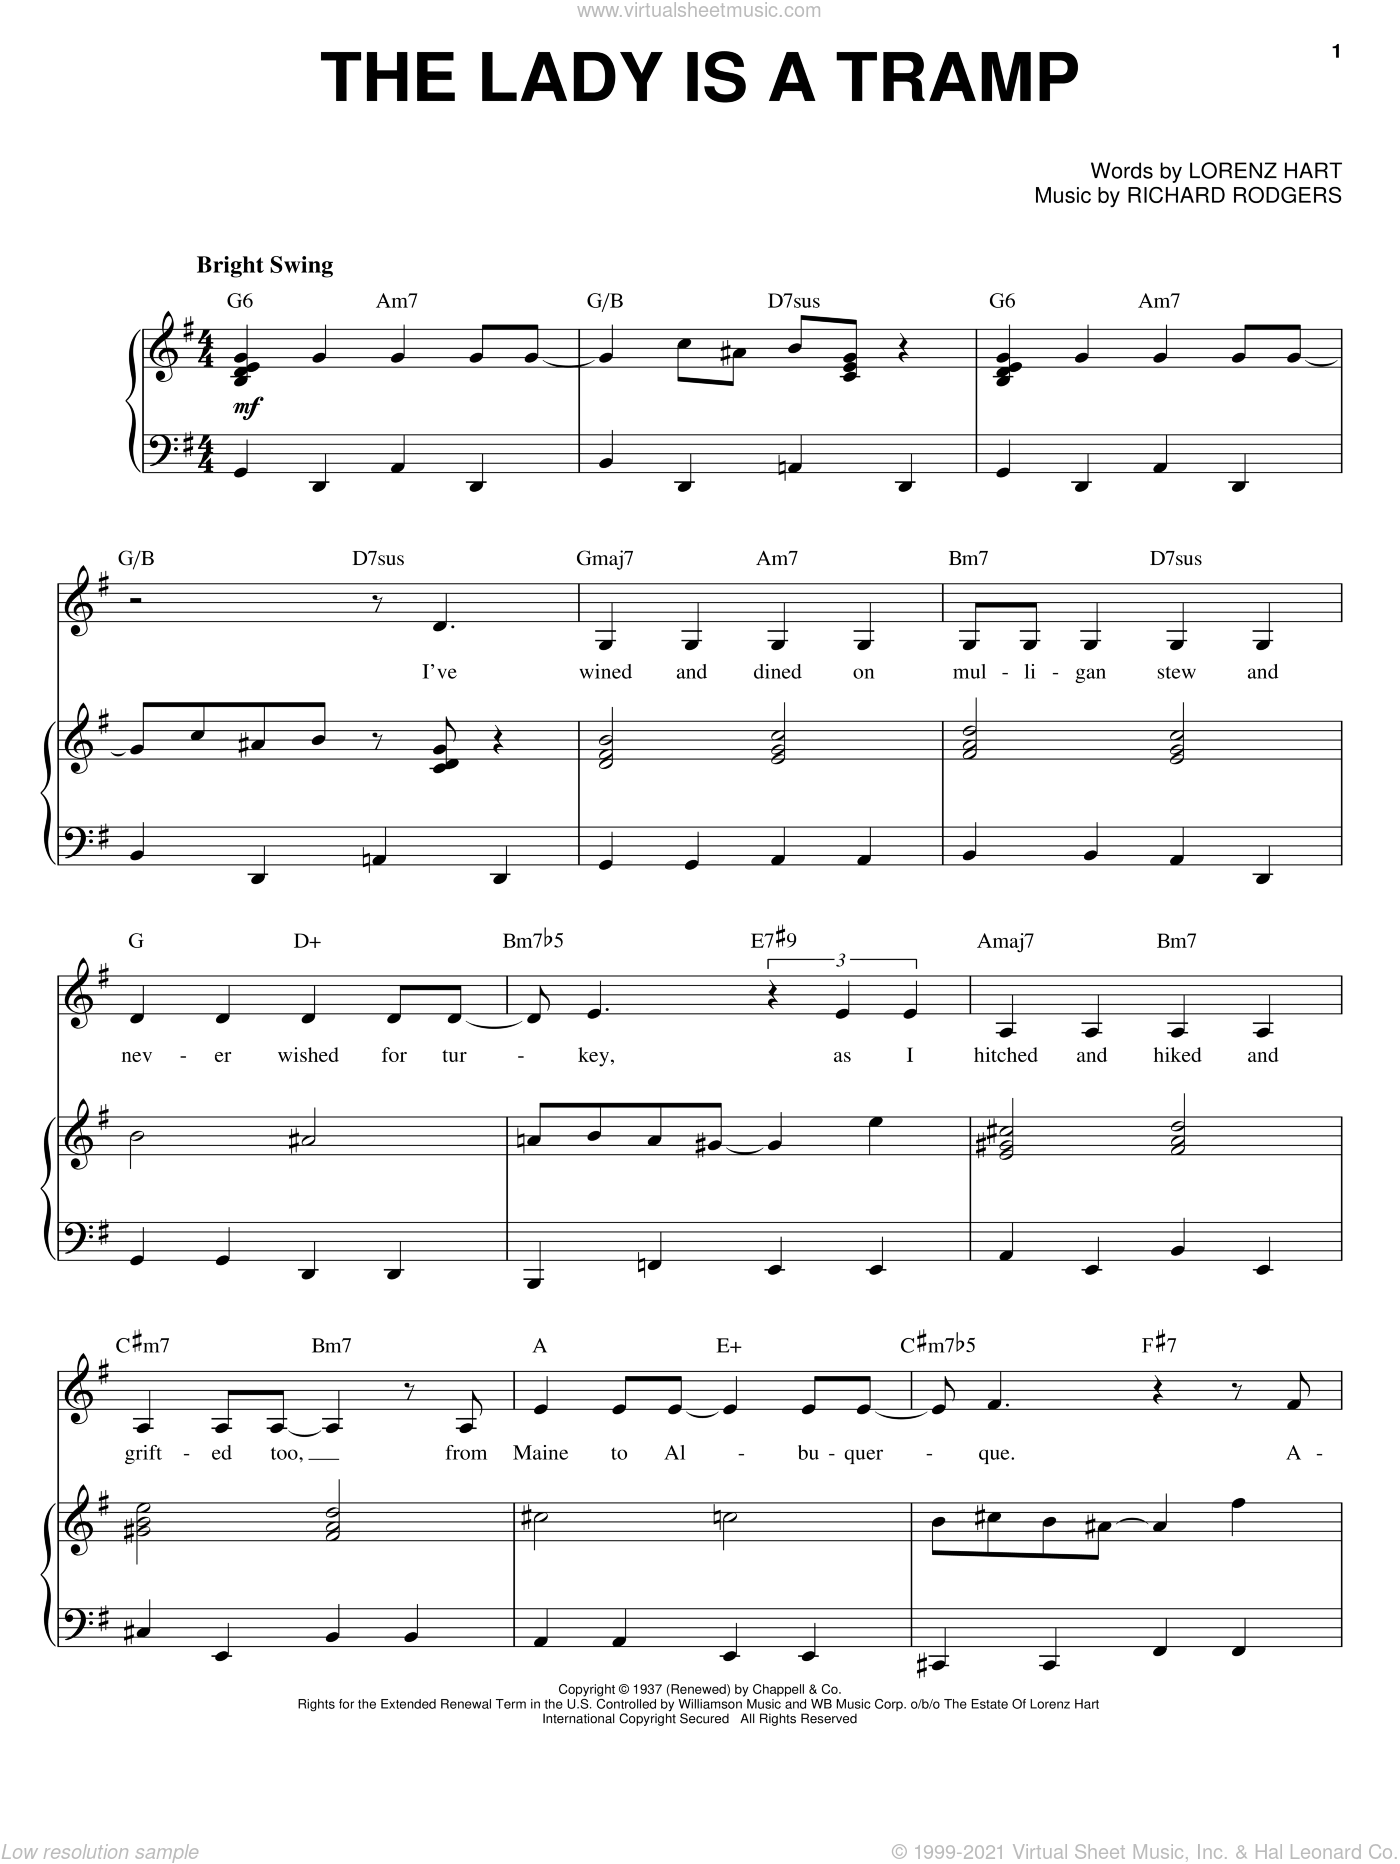 The Lady Is A Tramp sheet music for voice and piano by Richard Rodgers